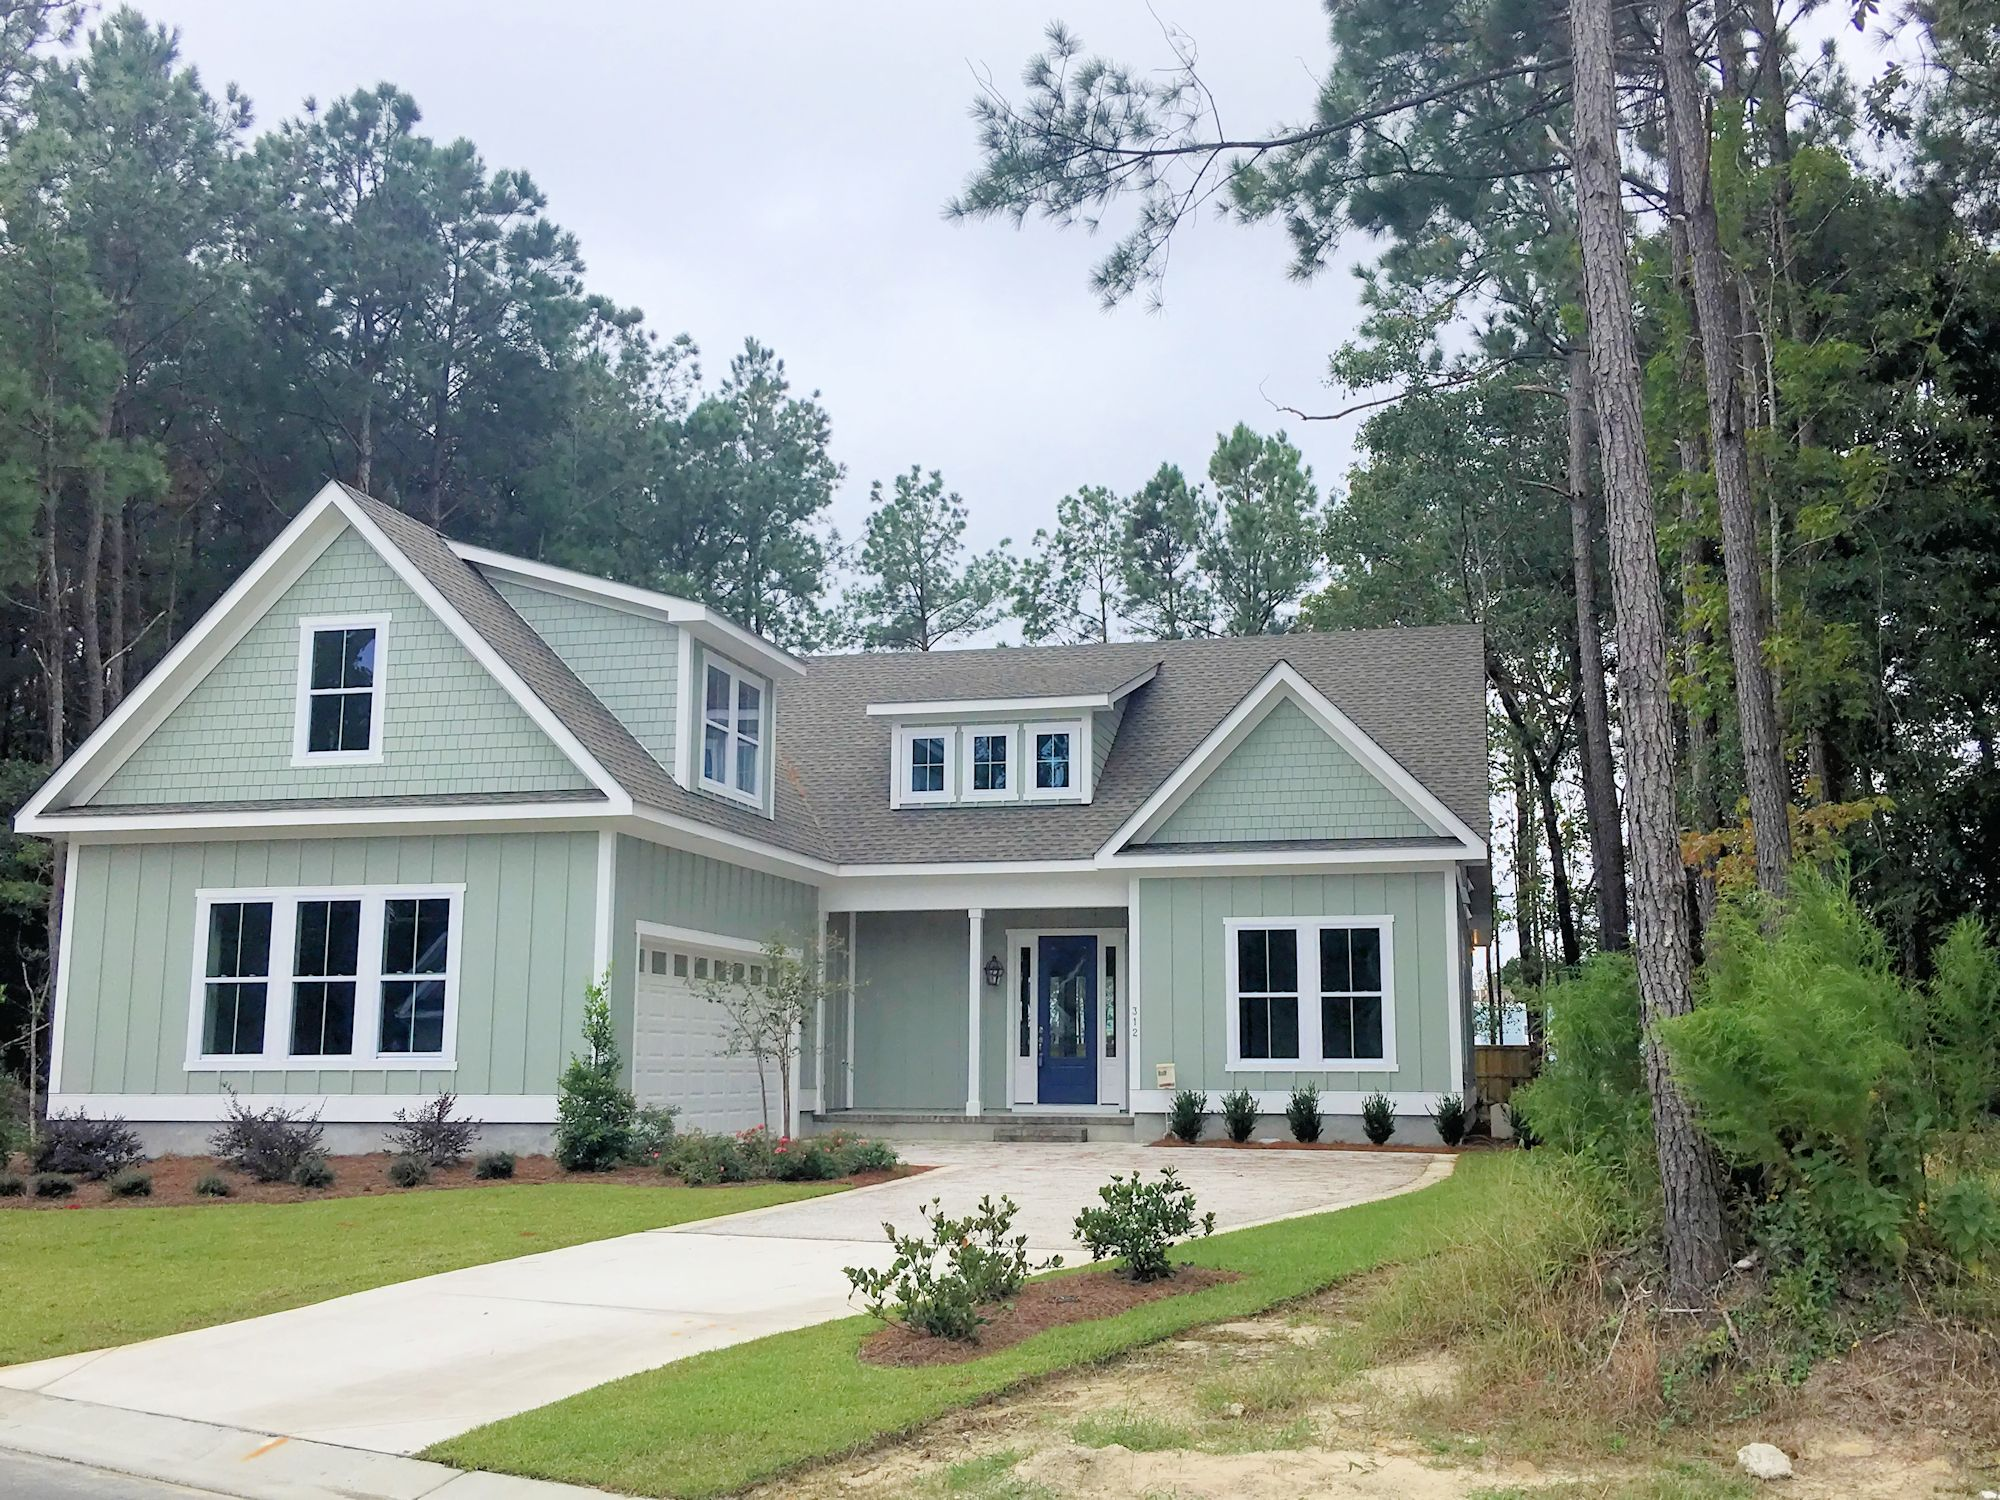 Scotts Hill Village Homes for Sale in Wilmington, NC | The Cameron Team